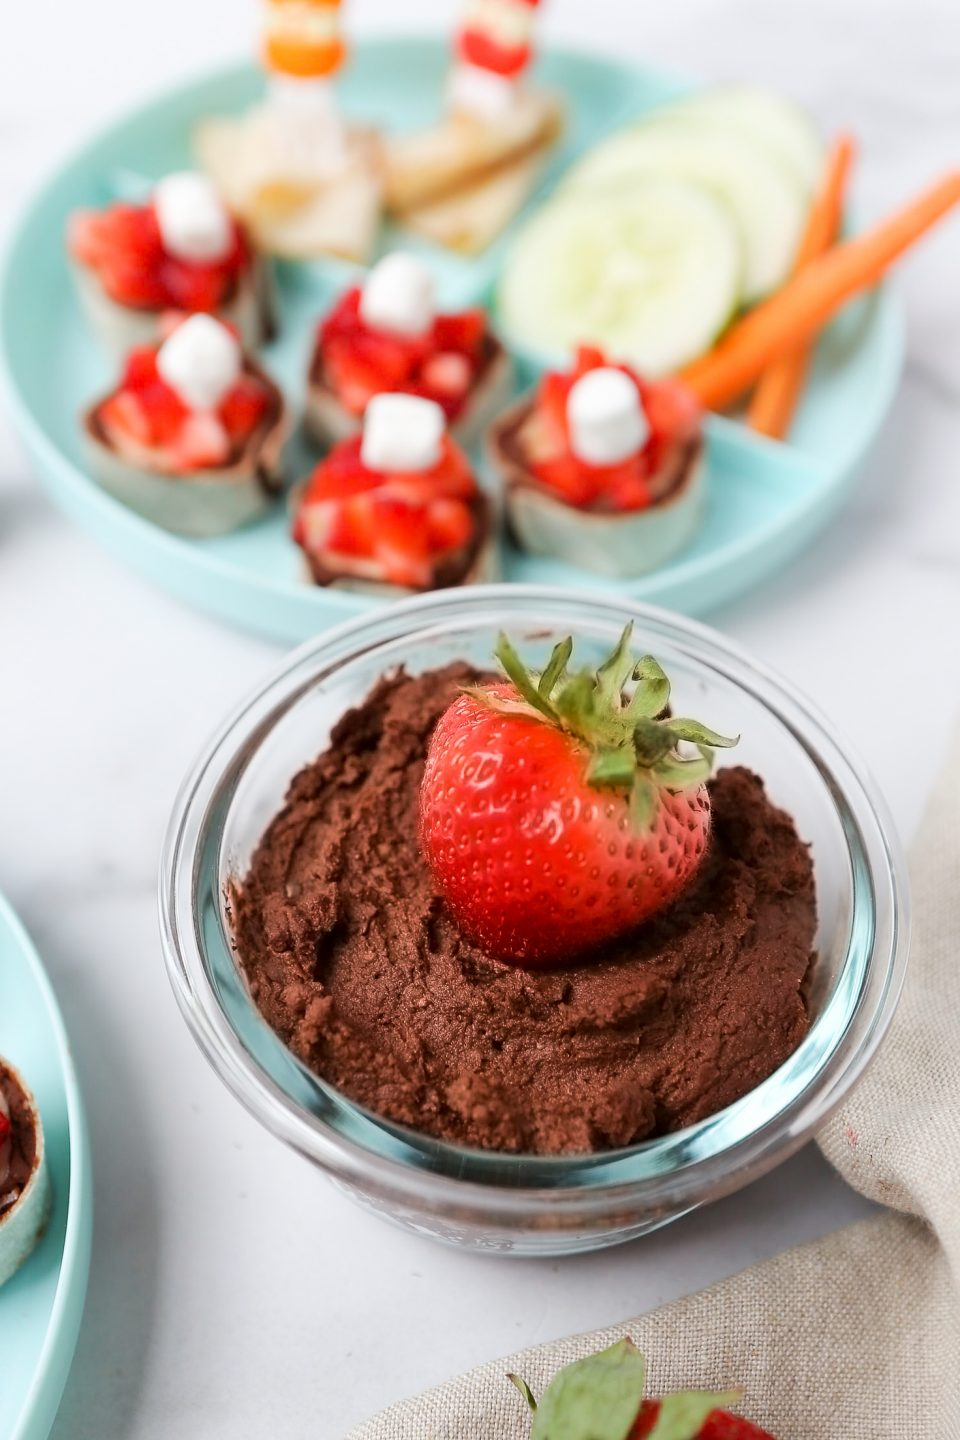 An overhead photos of homemade chocolate hummus in a small bowl with a strawberry placed in the middle. There is a kids plate with veggies and turkey slices the background.